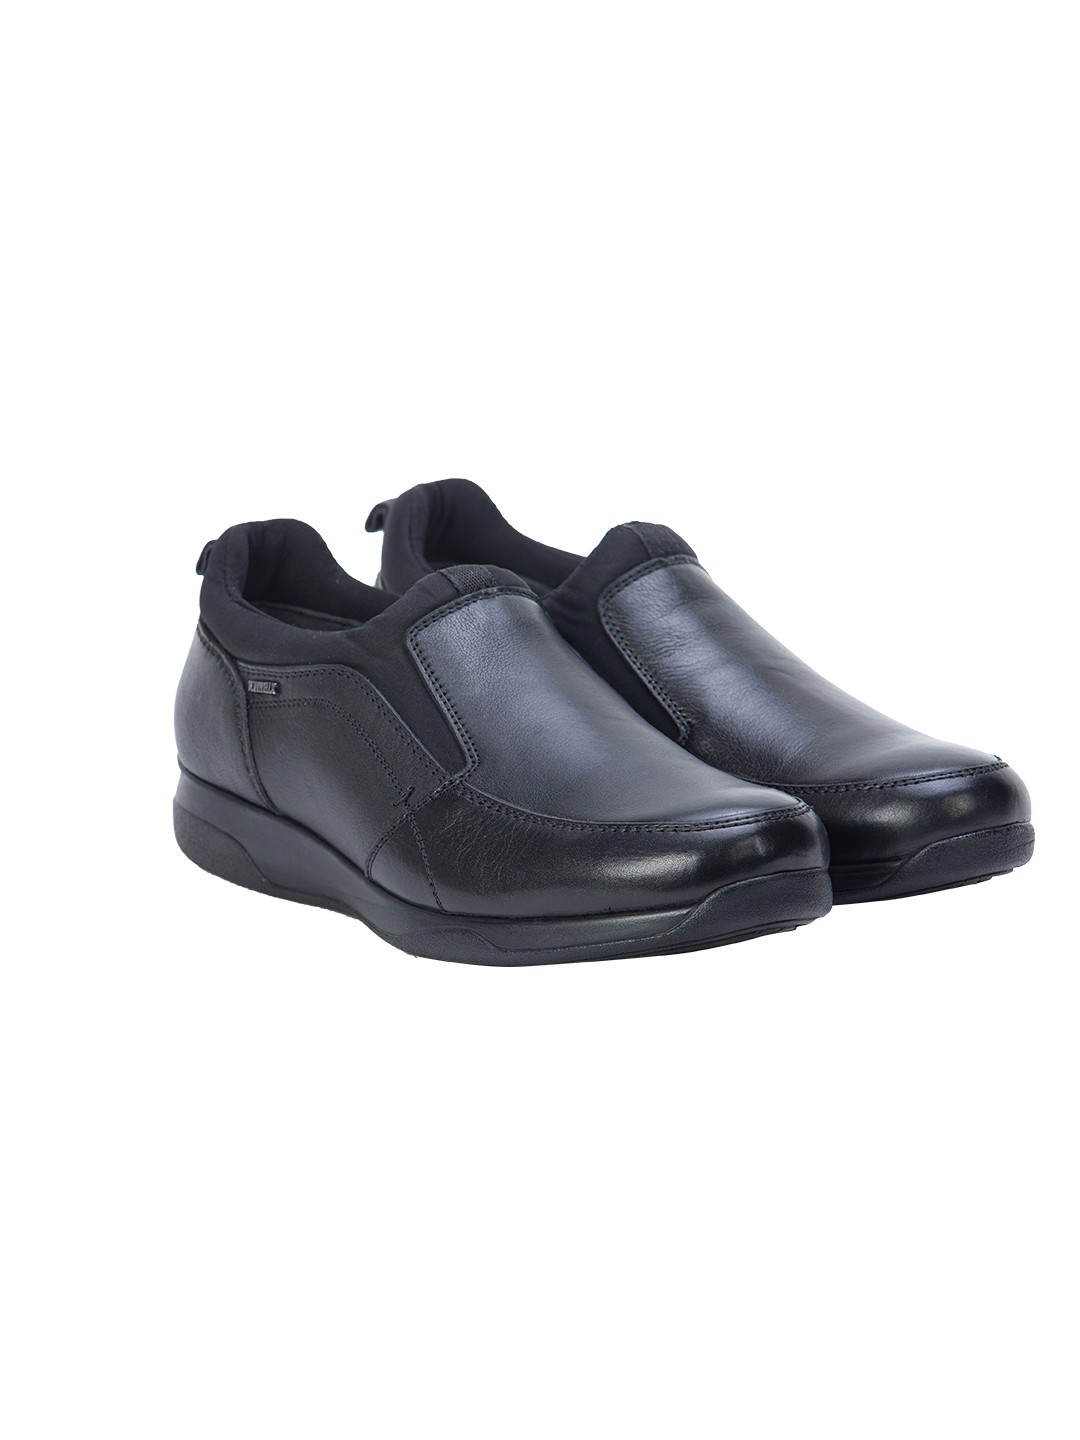 Buy Von Wellx Germany Comfort Jason Black Shoes Online in Jeddah